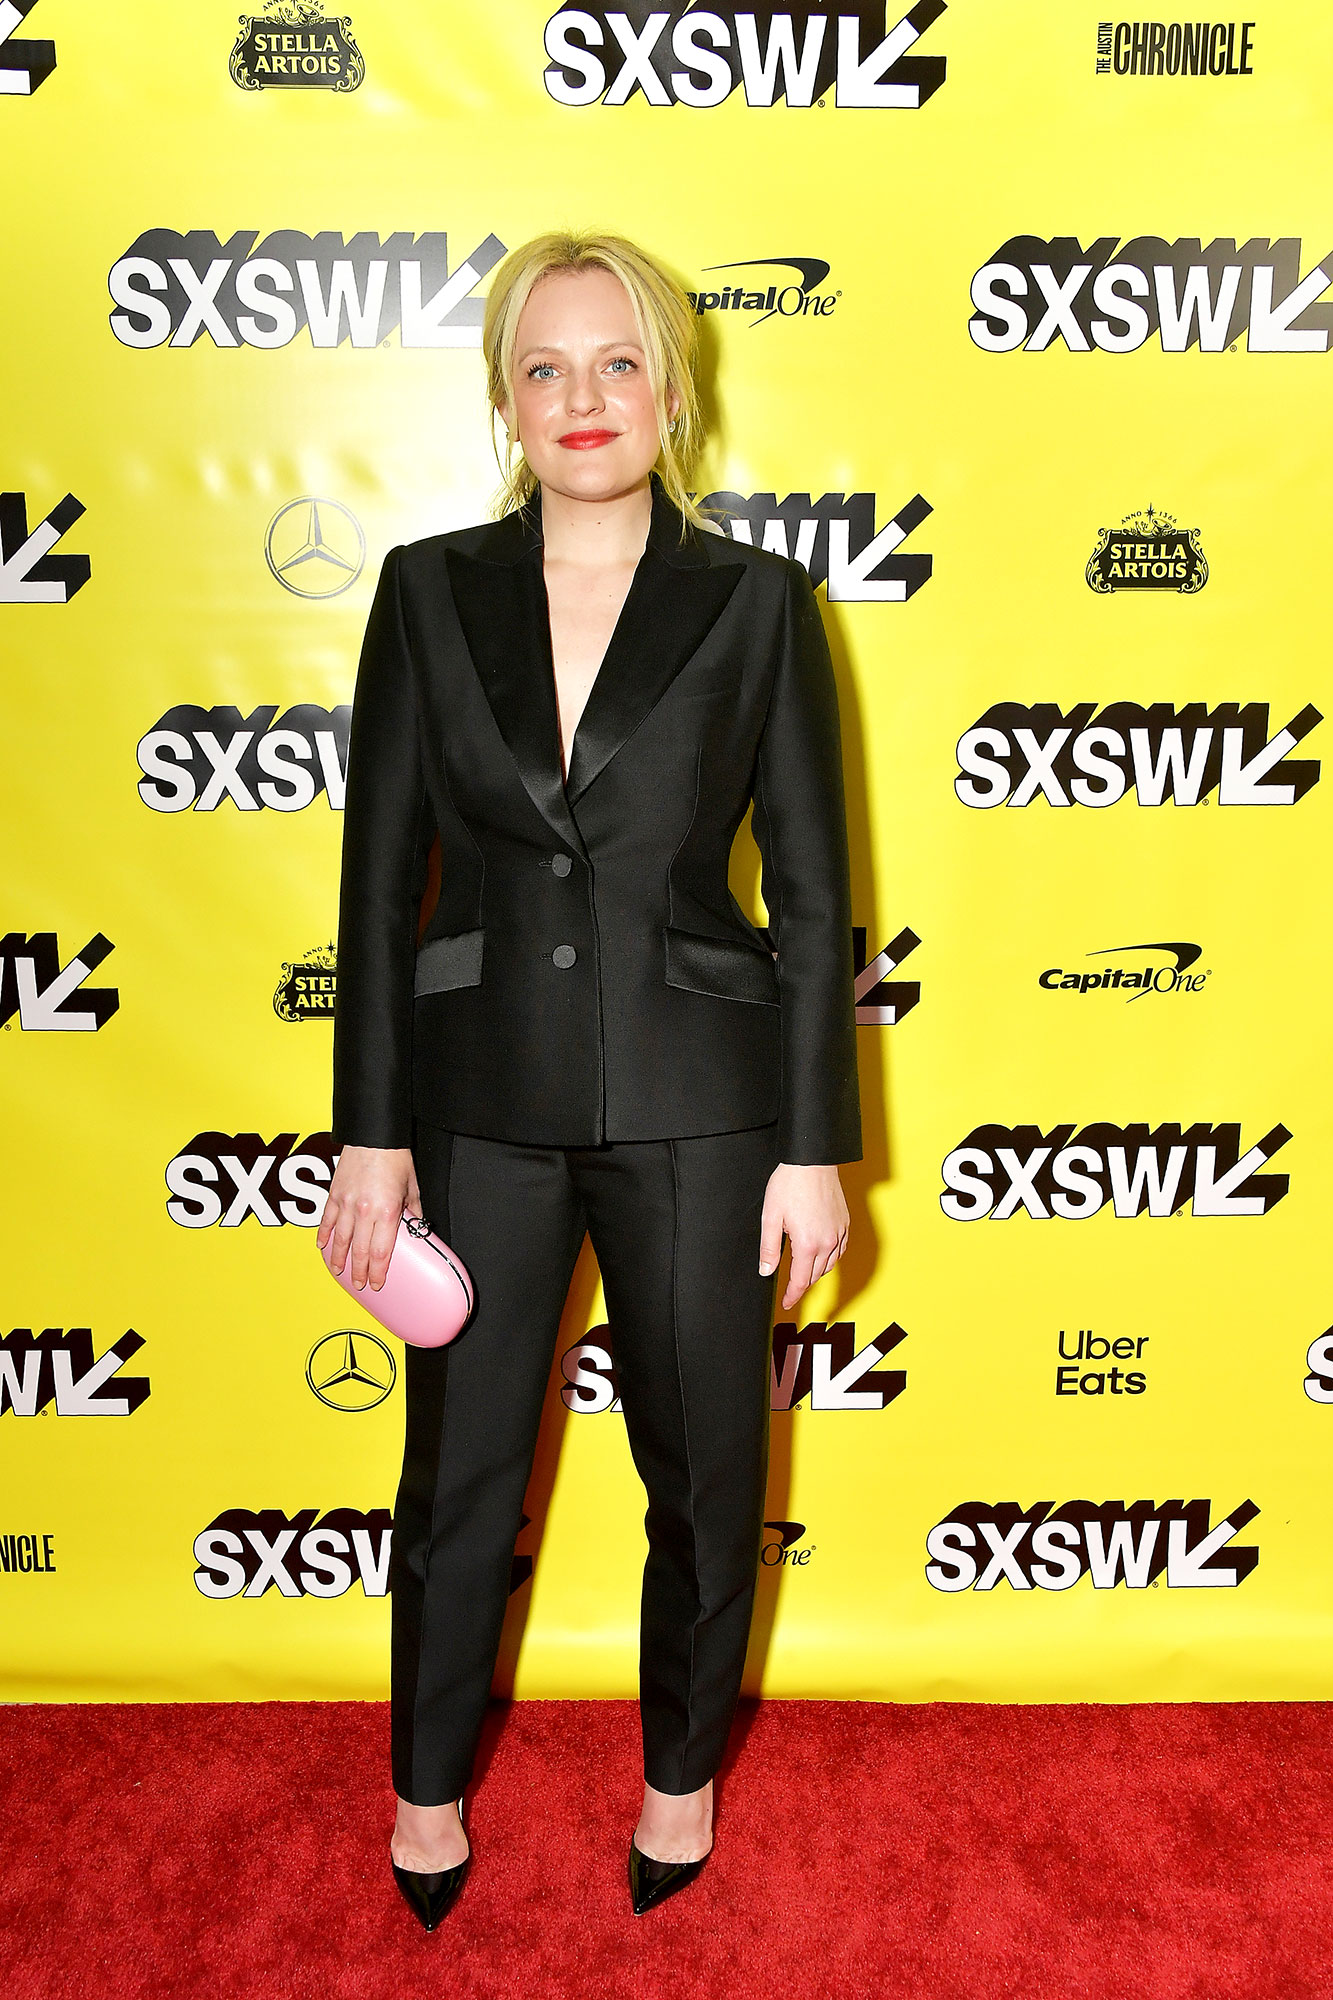 The Stars Bring Their Beauty and Style A-Game to SXSW - The blonde beauty looked every bit the HBIC in her shirtless Dior tux at the Her Smell premiere on Saturday, March 9.